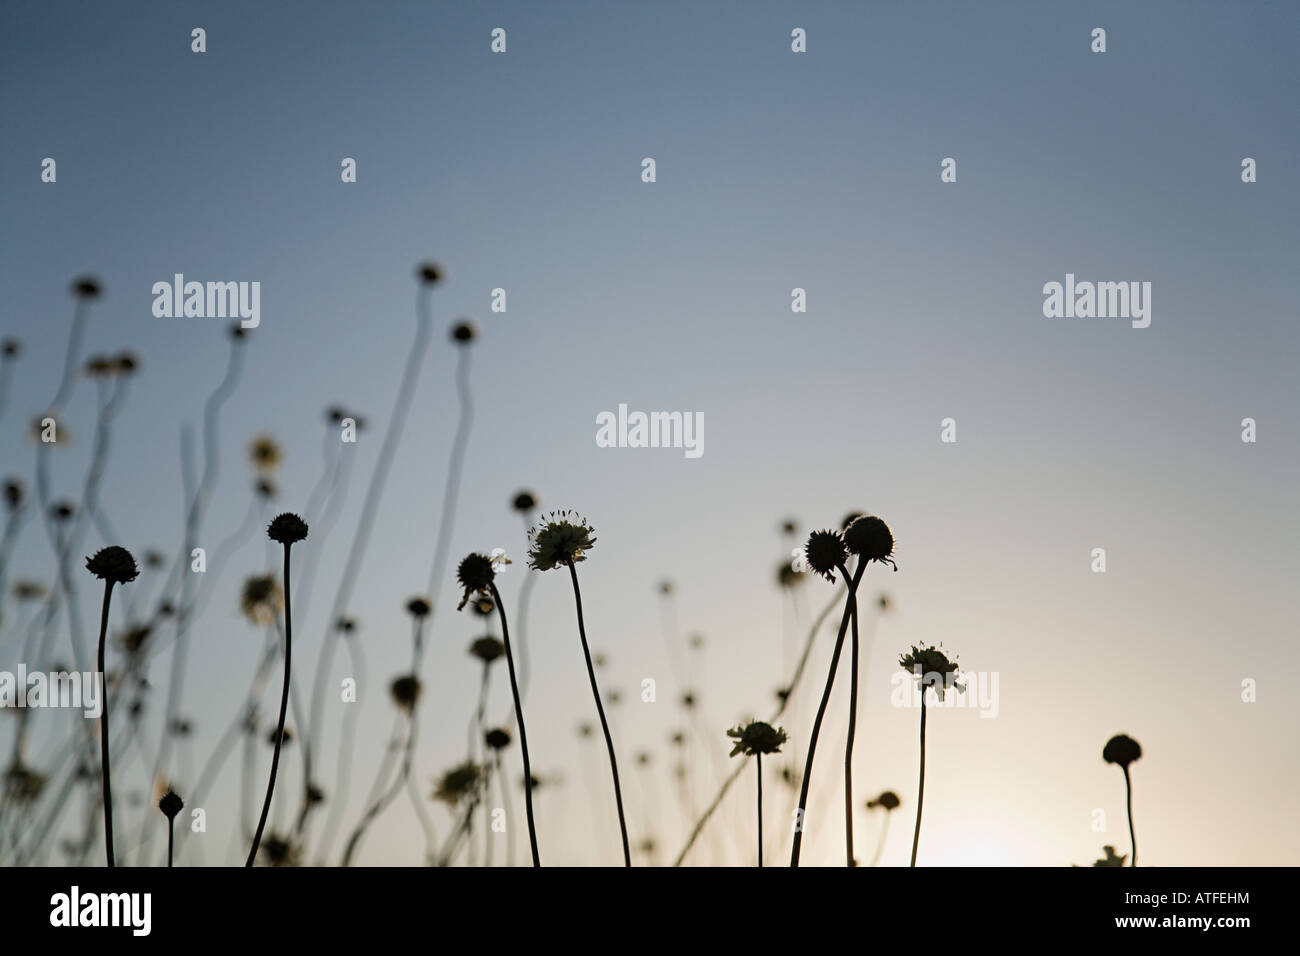 Silhouetted plants at sunset - Stock Image